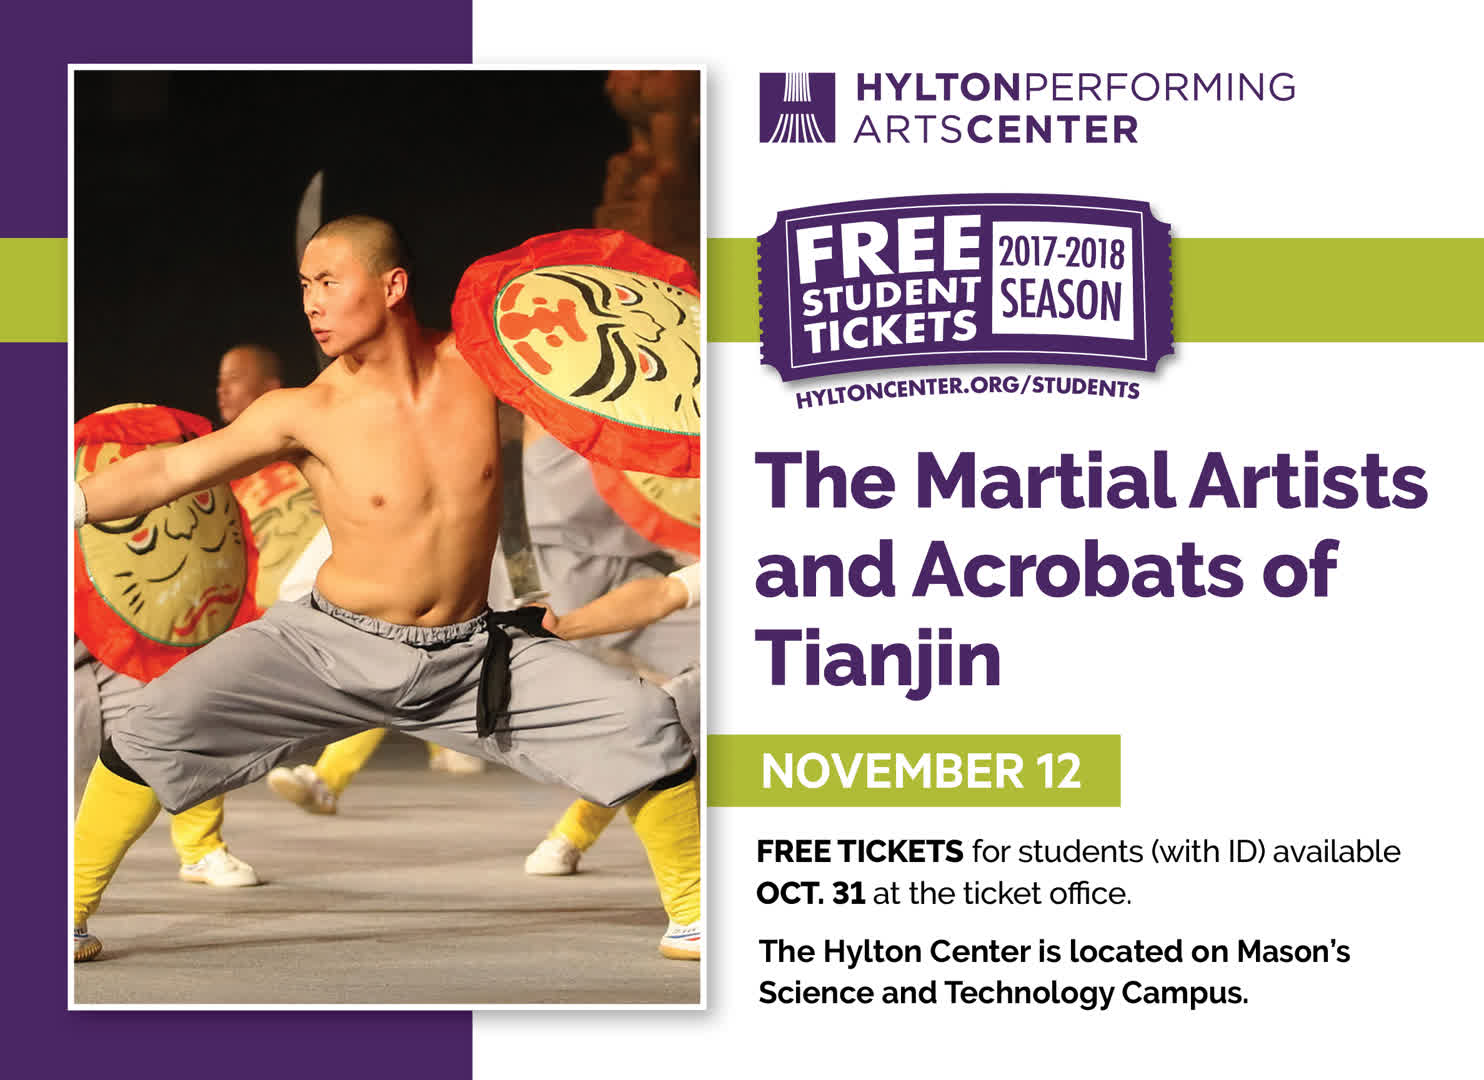 Information regarding Martial Artists and Acrobats of Tianjin is as follows Start date (when you would like your content to be posted) is October 24 2017 and End Date  (when you would like your content to be removed from the screens) is November 03 2017 and File is Browse and Name is Bruce Scott and Email is bscott15@gmu.edu and Group Name is CVPA and File Name is 03_Acrobats_11-12-17_comp.jpg and Panel for your ad to be displayed is Main and Name of Ad/Event is Martial Artists and Acrobats of Tianjin and Affiliation is Mason Department and